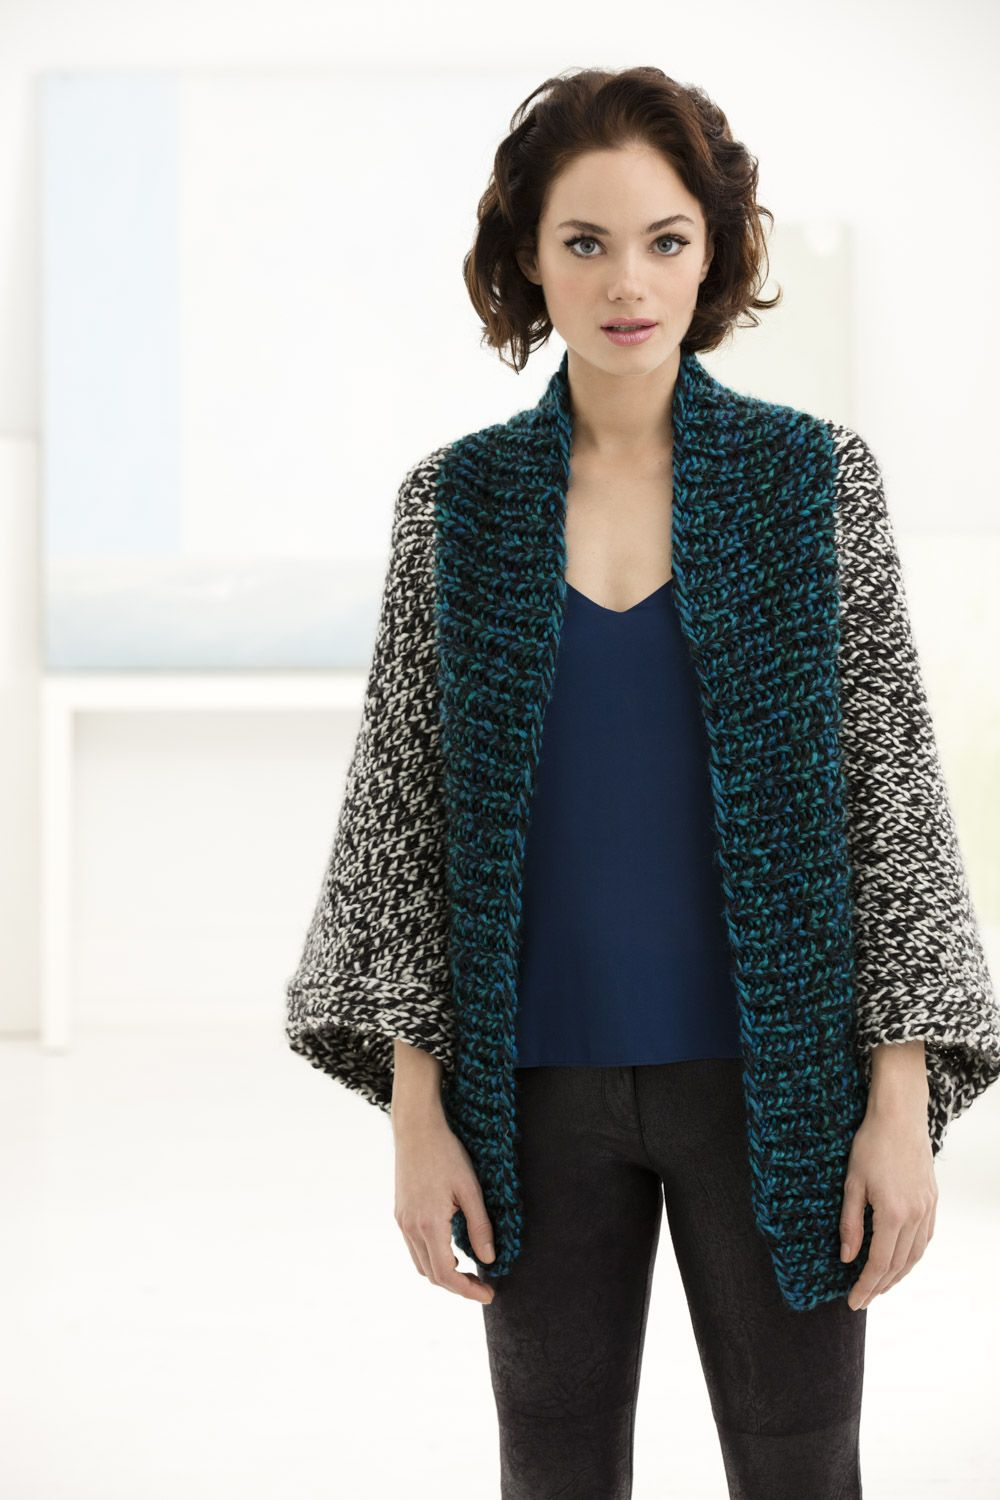 b481c9e33abba2 Make this easy   chic shrug with Lion Brand Country! Free knit pattern  calls for 4 balls of yarn (pictured in white mountains and kennebunk teal)  and size ...